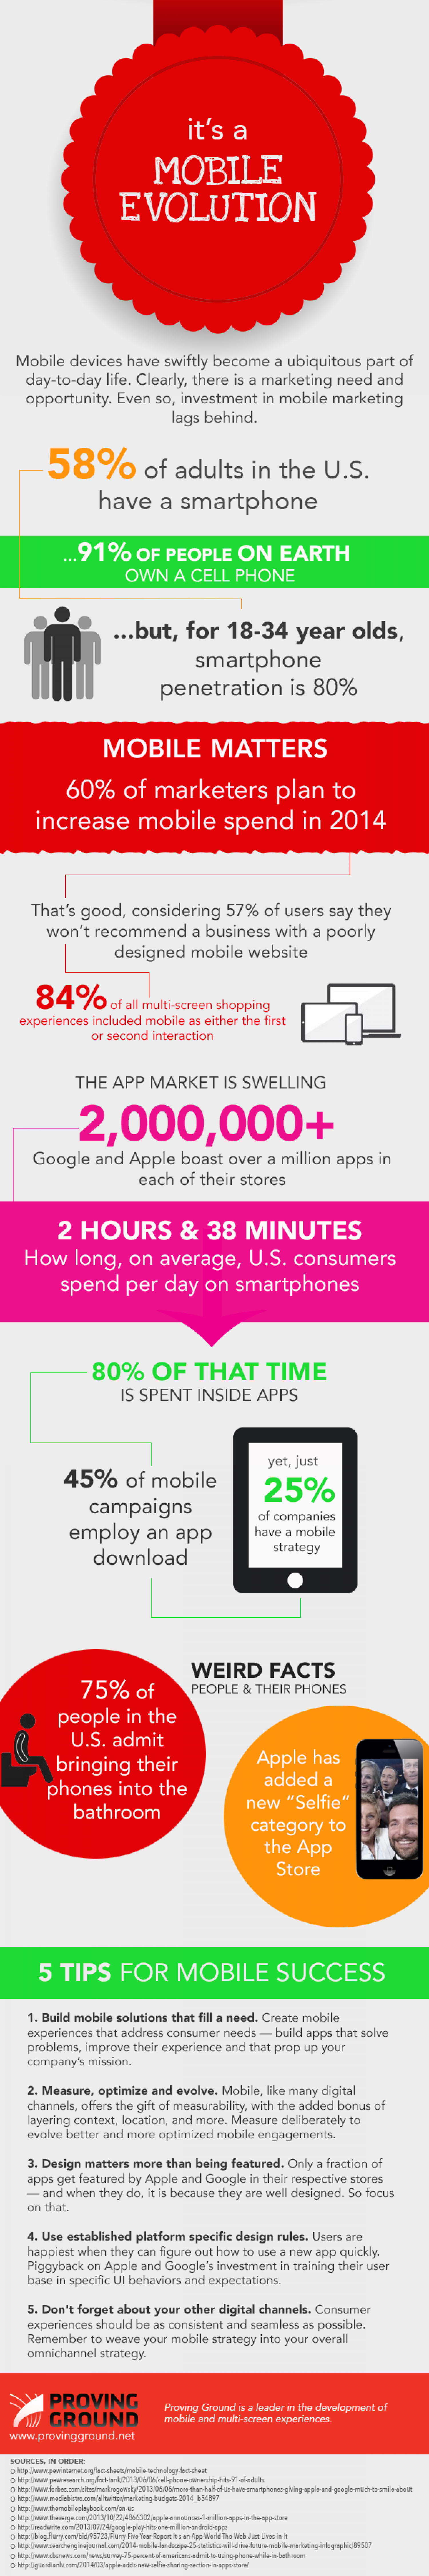 It's a Mobile Evolution Infographic